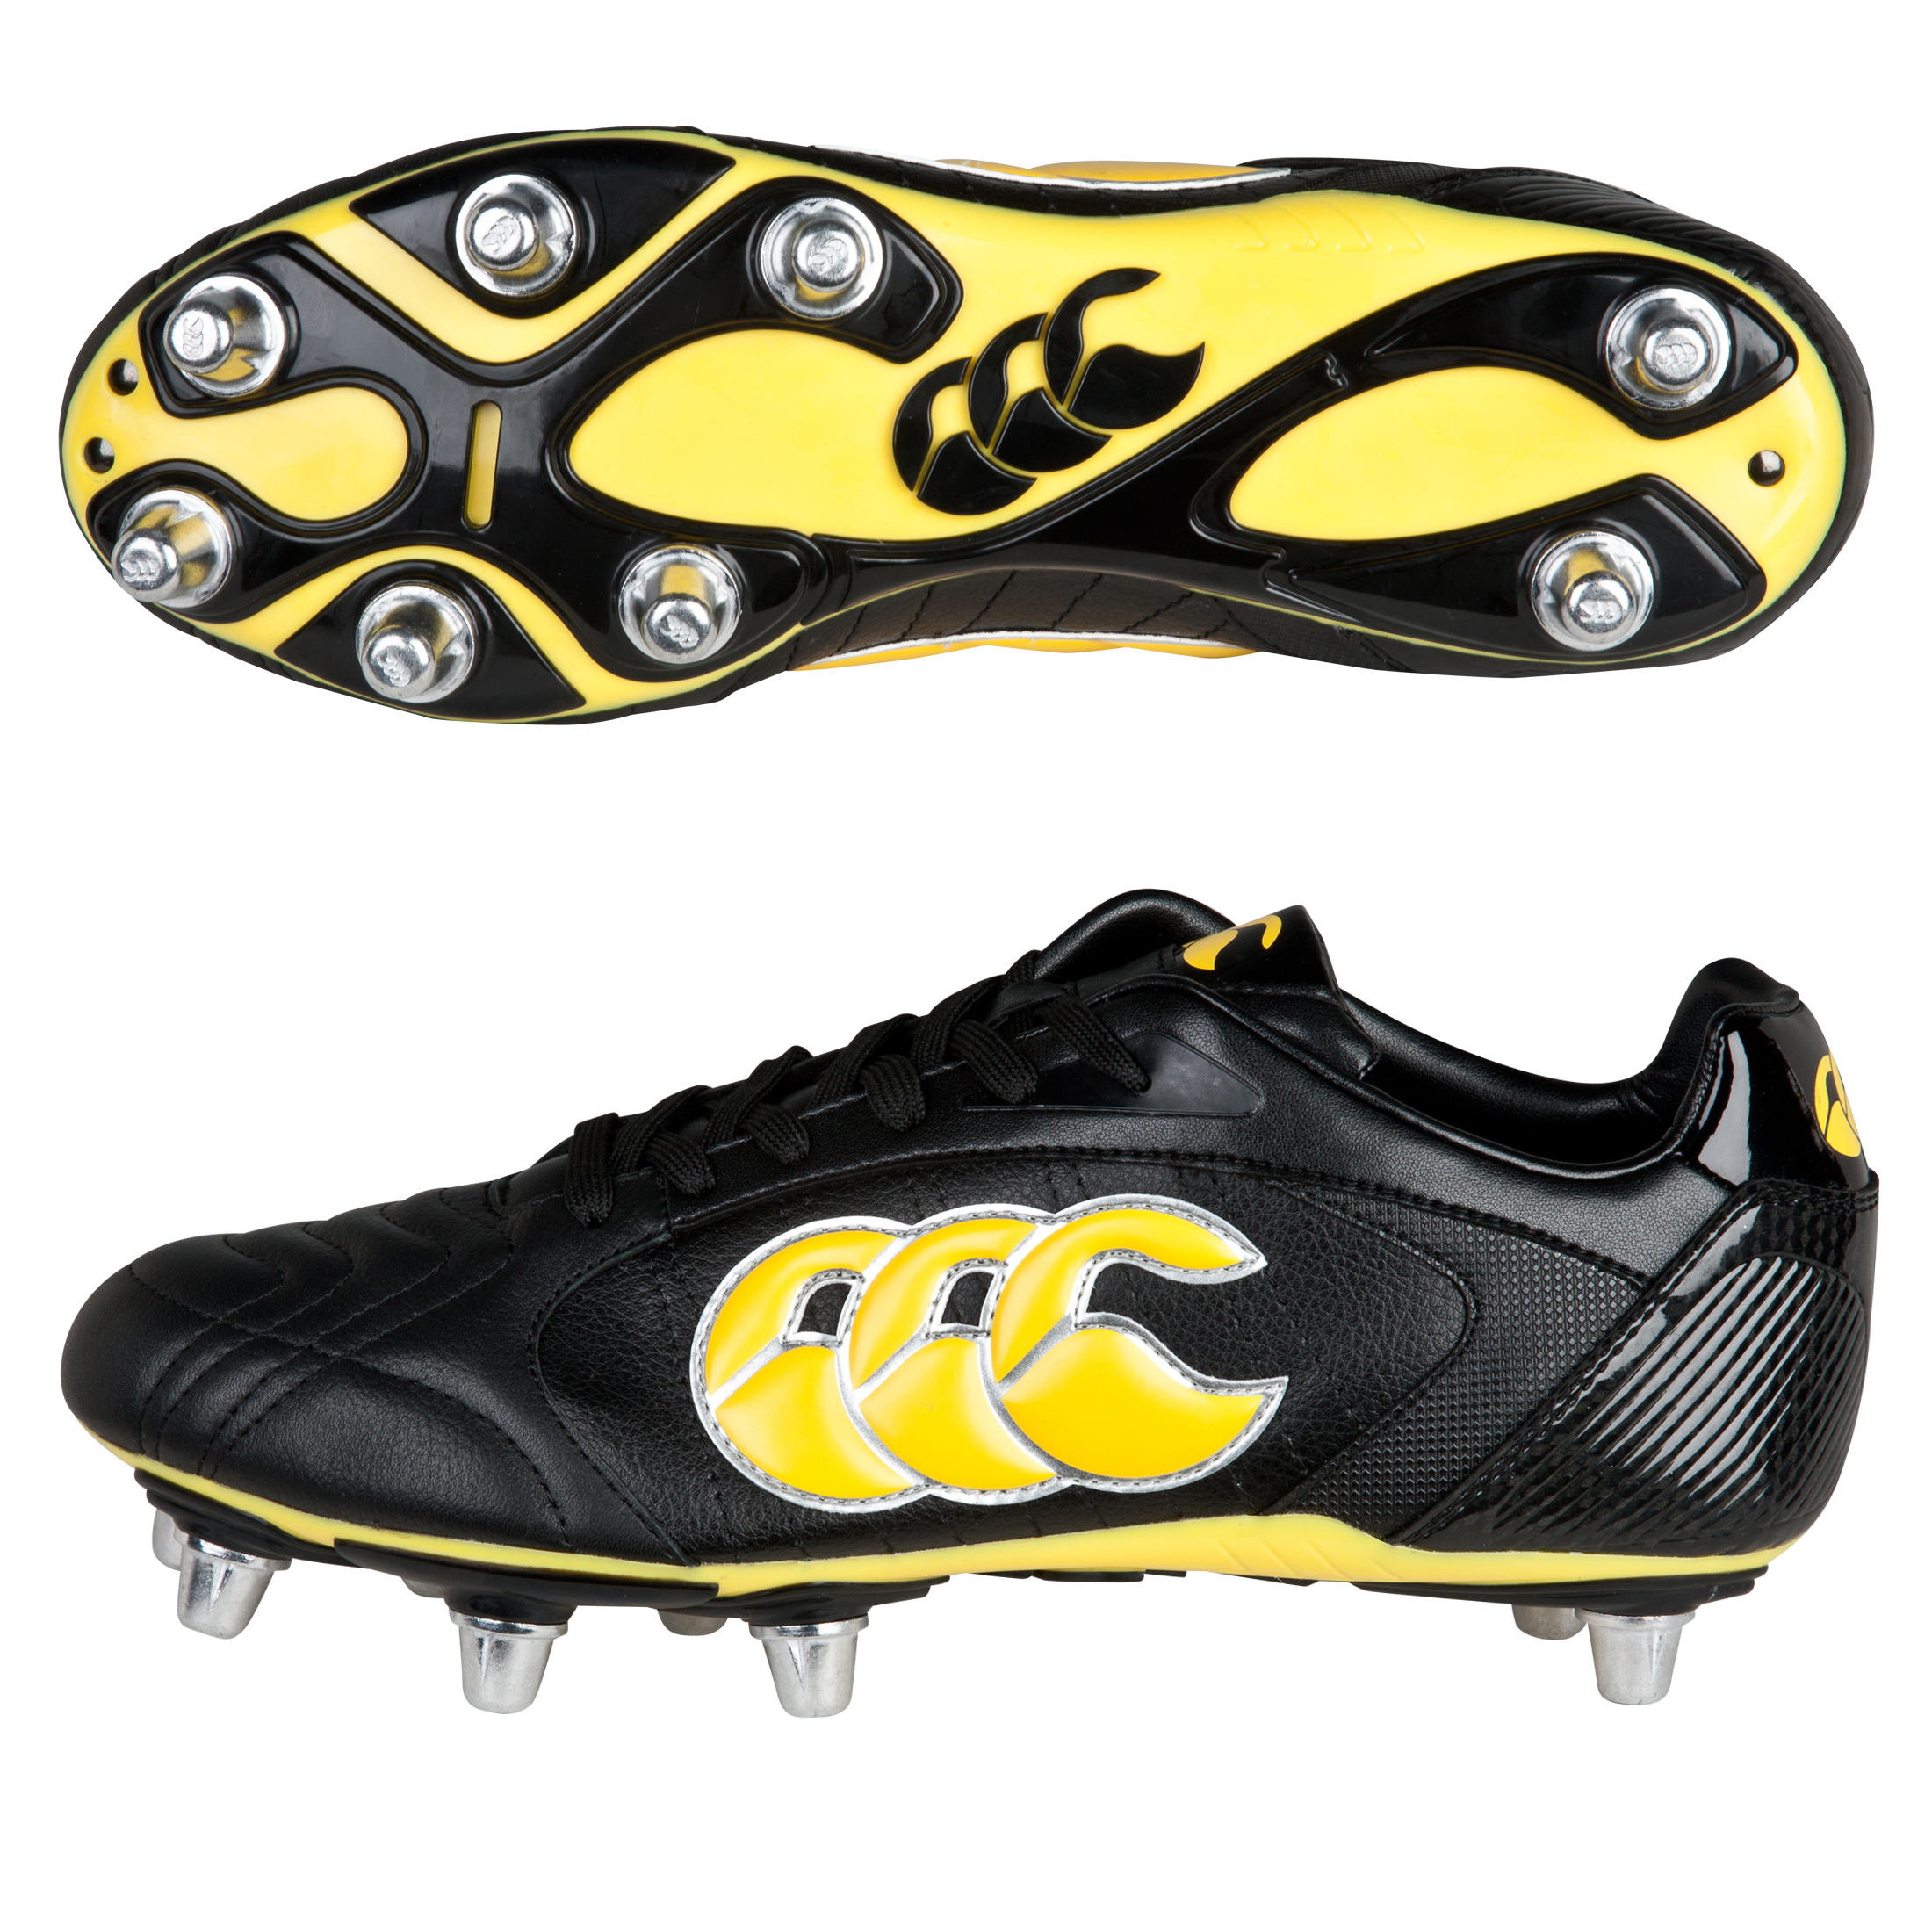 Canterbury Phoenix III Elite 8 Stud Rugby Boots - Black/Yellow/Chrome